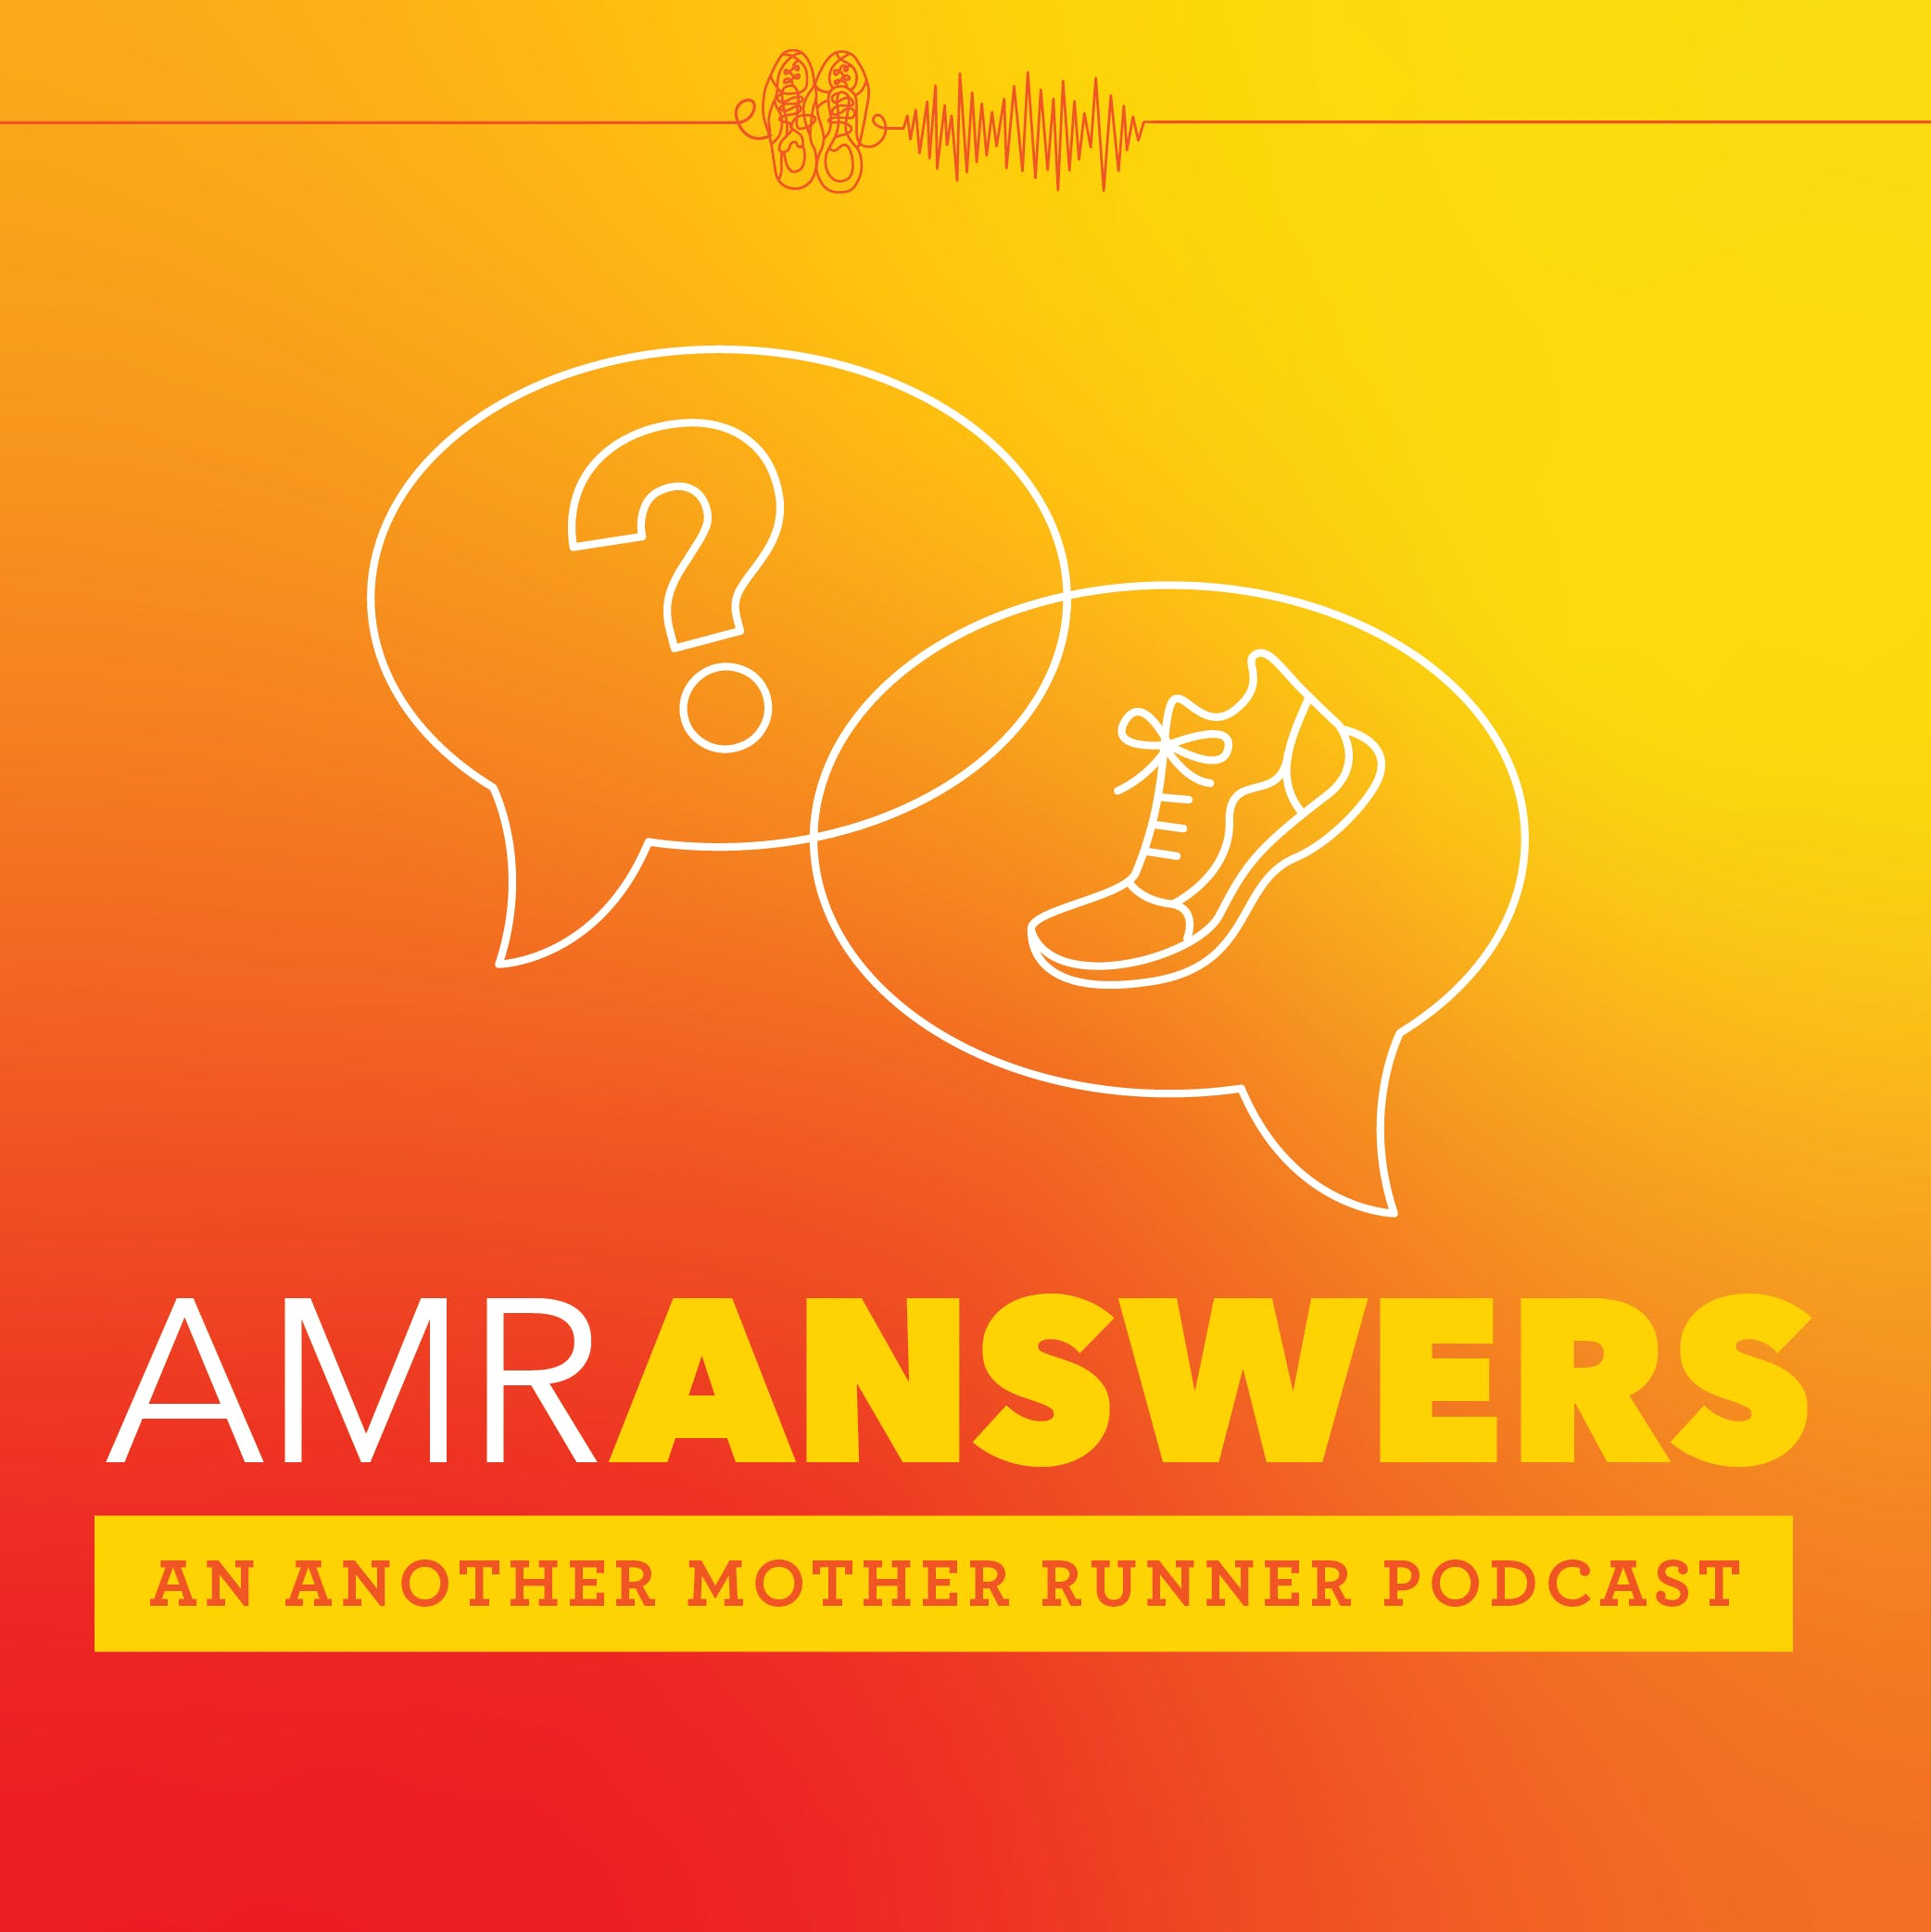 AMR Answers #68: Running Posture; Running by Time v. Distance